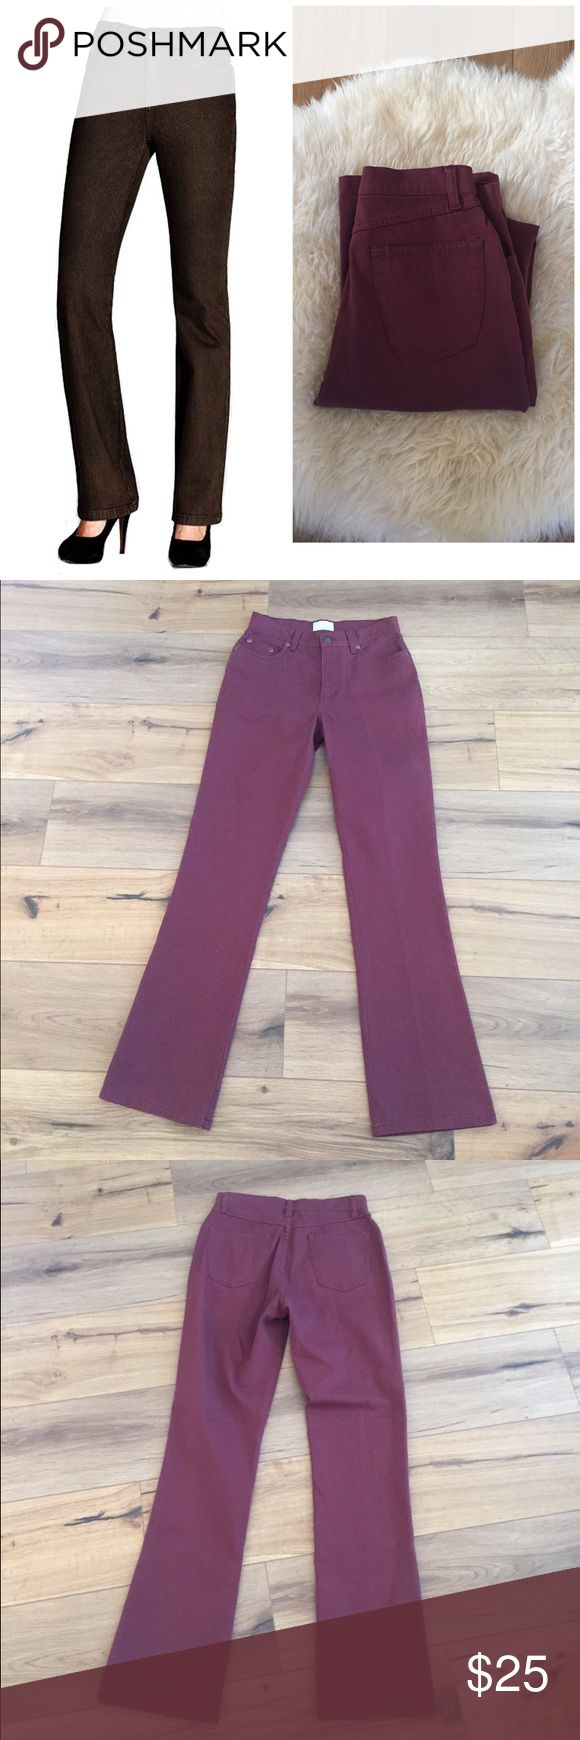 Fdj French dressing jeans Olivia flare Crafted of overdyed denim in a slimming, comfortable cut, FDJ French Dressing's Olivia flare jeans are tailored through the hips, slim through the thighs, and feature a hint of Lycra® for stretch and shape retention. Color is wine french dressing Jeans Flare & Wide Leg